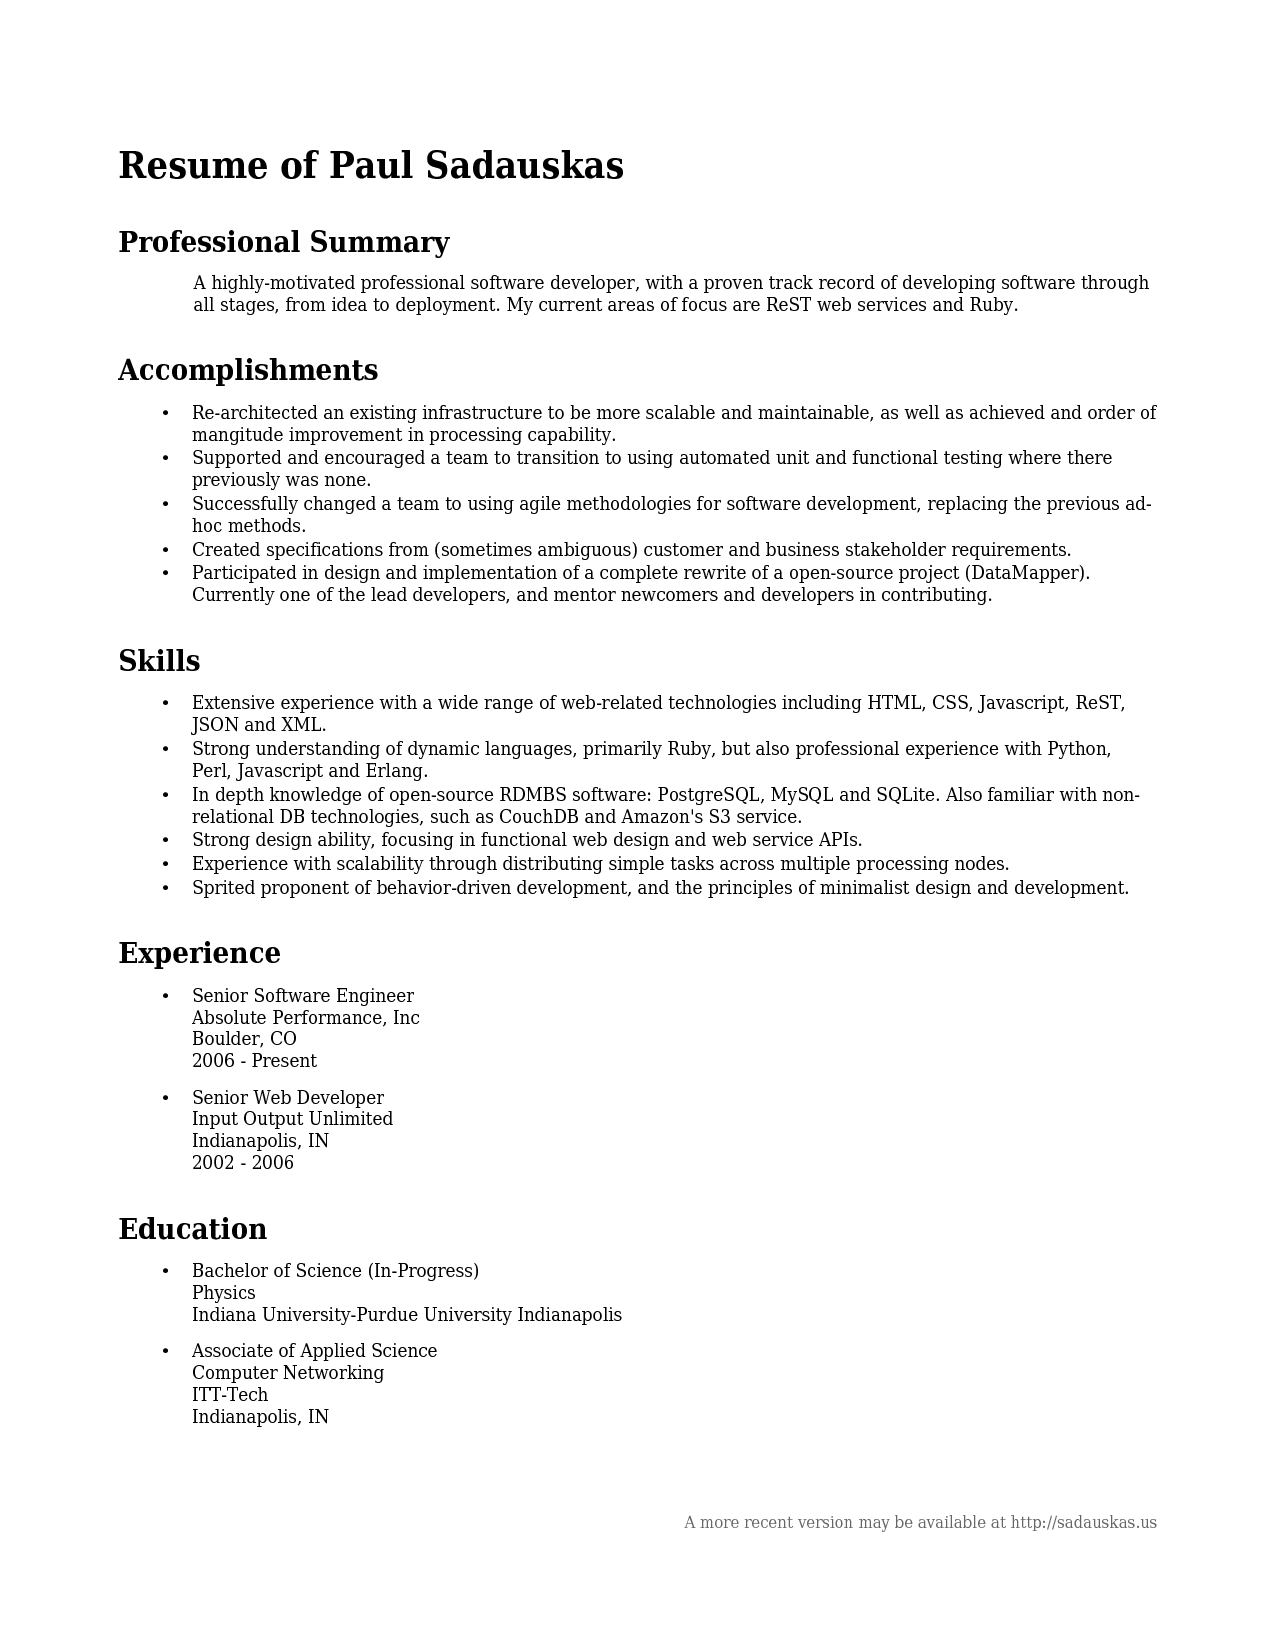 resume How To Write A Good Professional Summary For A Resume professional overview resume ninja turtletechrepairs co summary